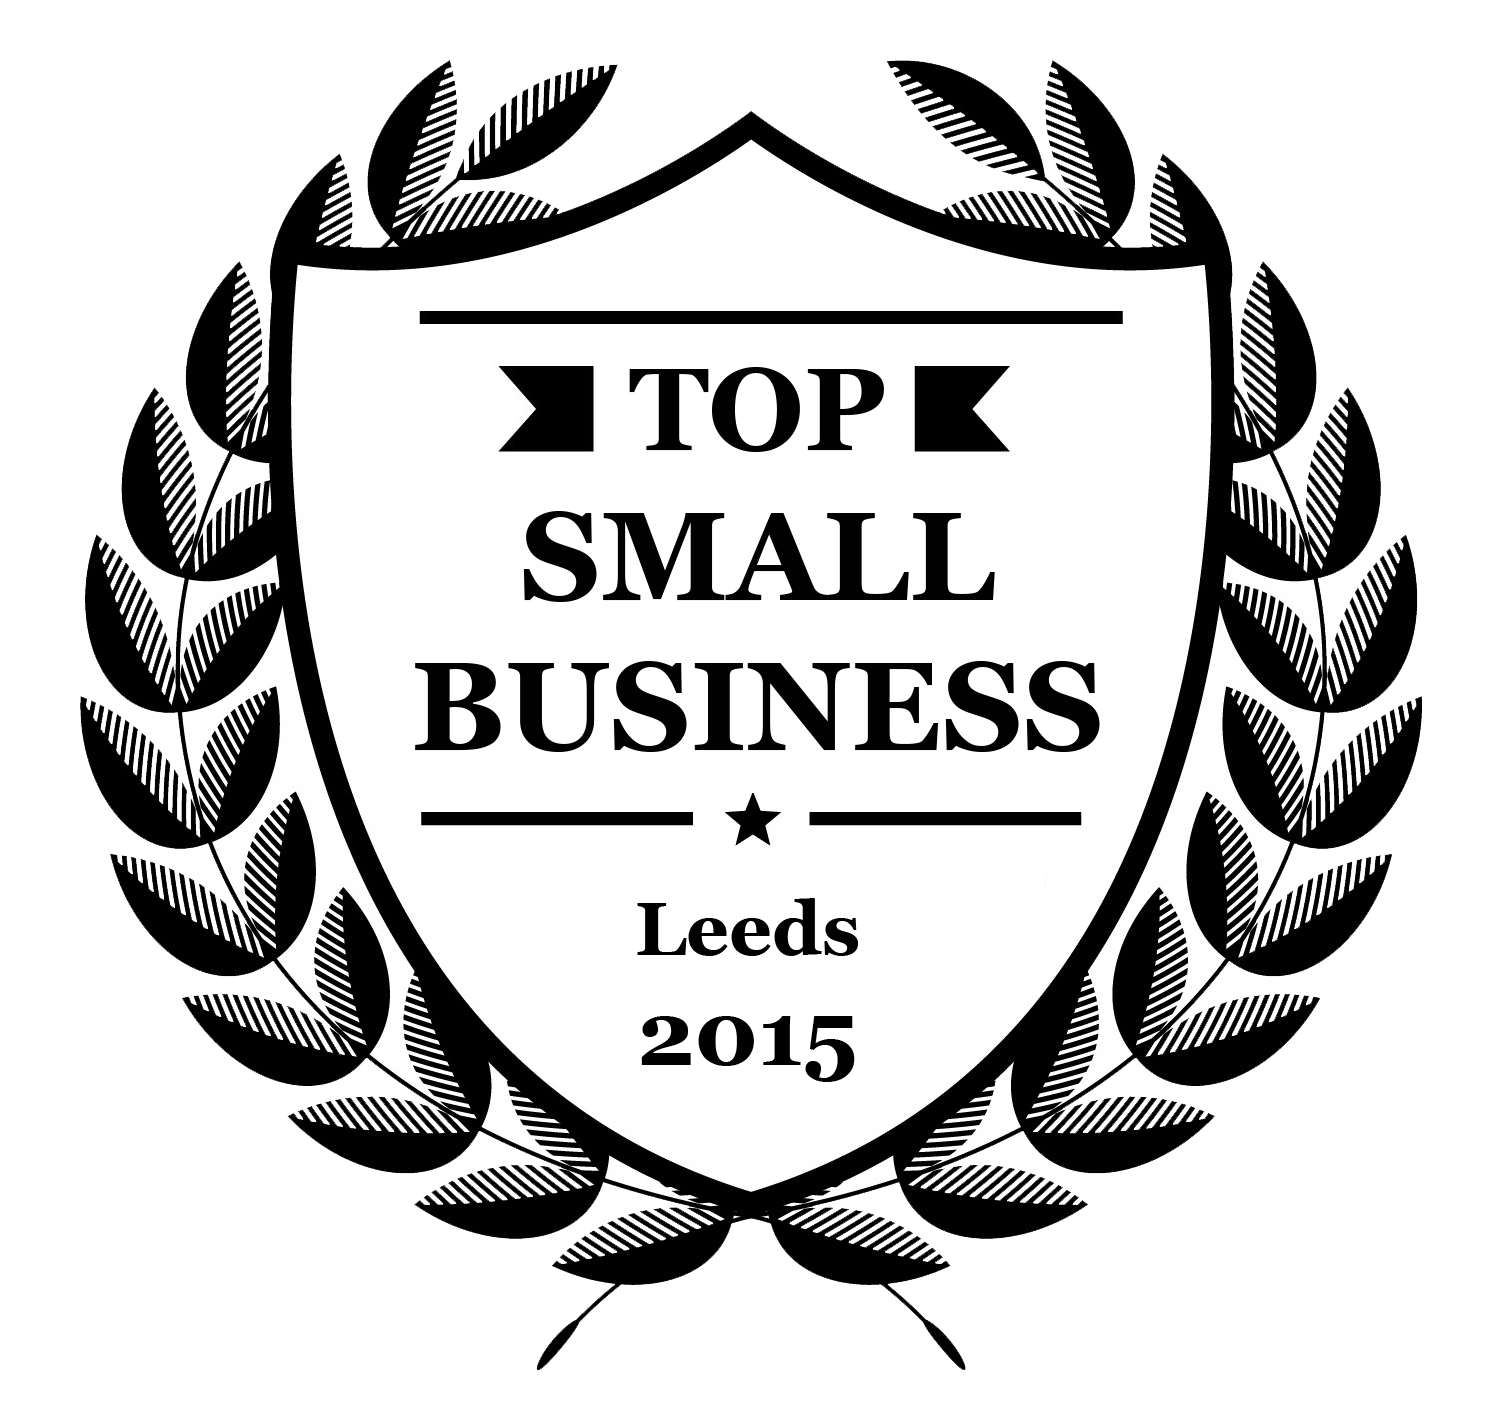 Top small business award 2015